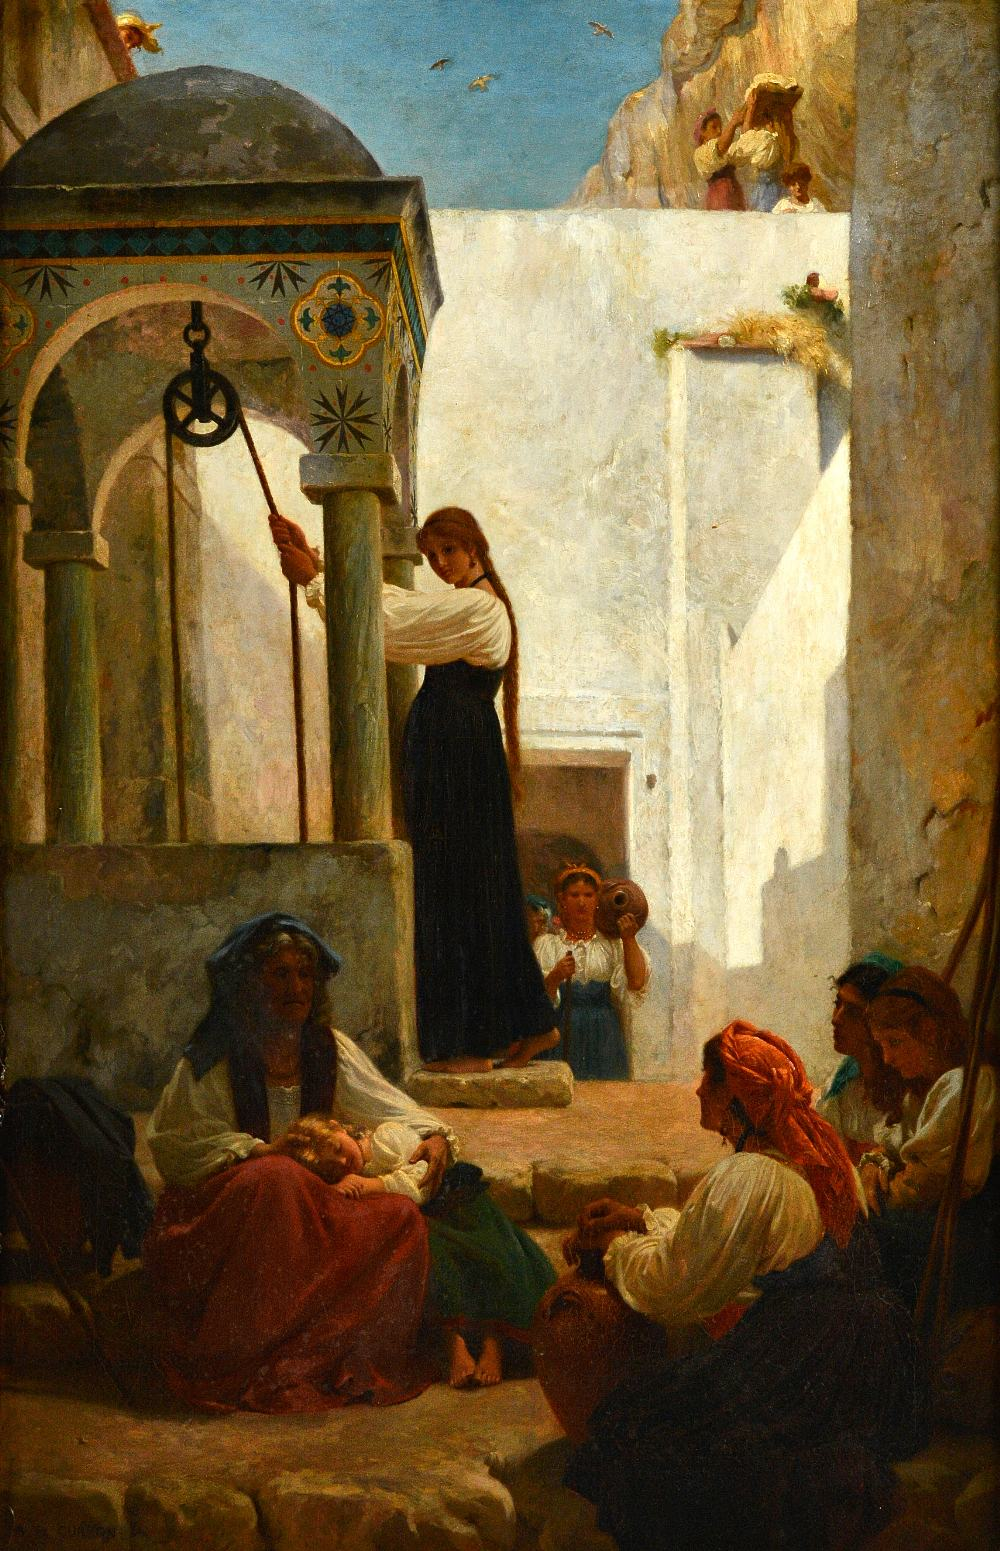 Lot 1049 - Paul Alfred de Curzon (1820-1895), Women at the well: Autour d'un Puits a Amalfi, oil on canvas,